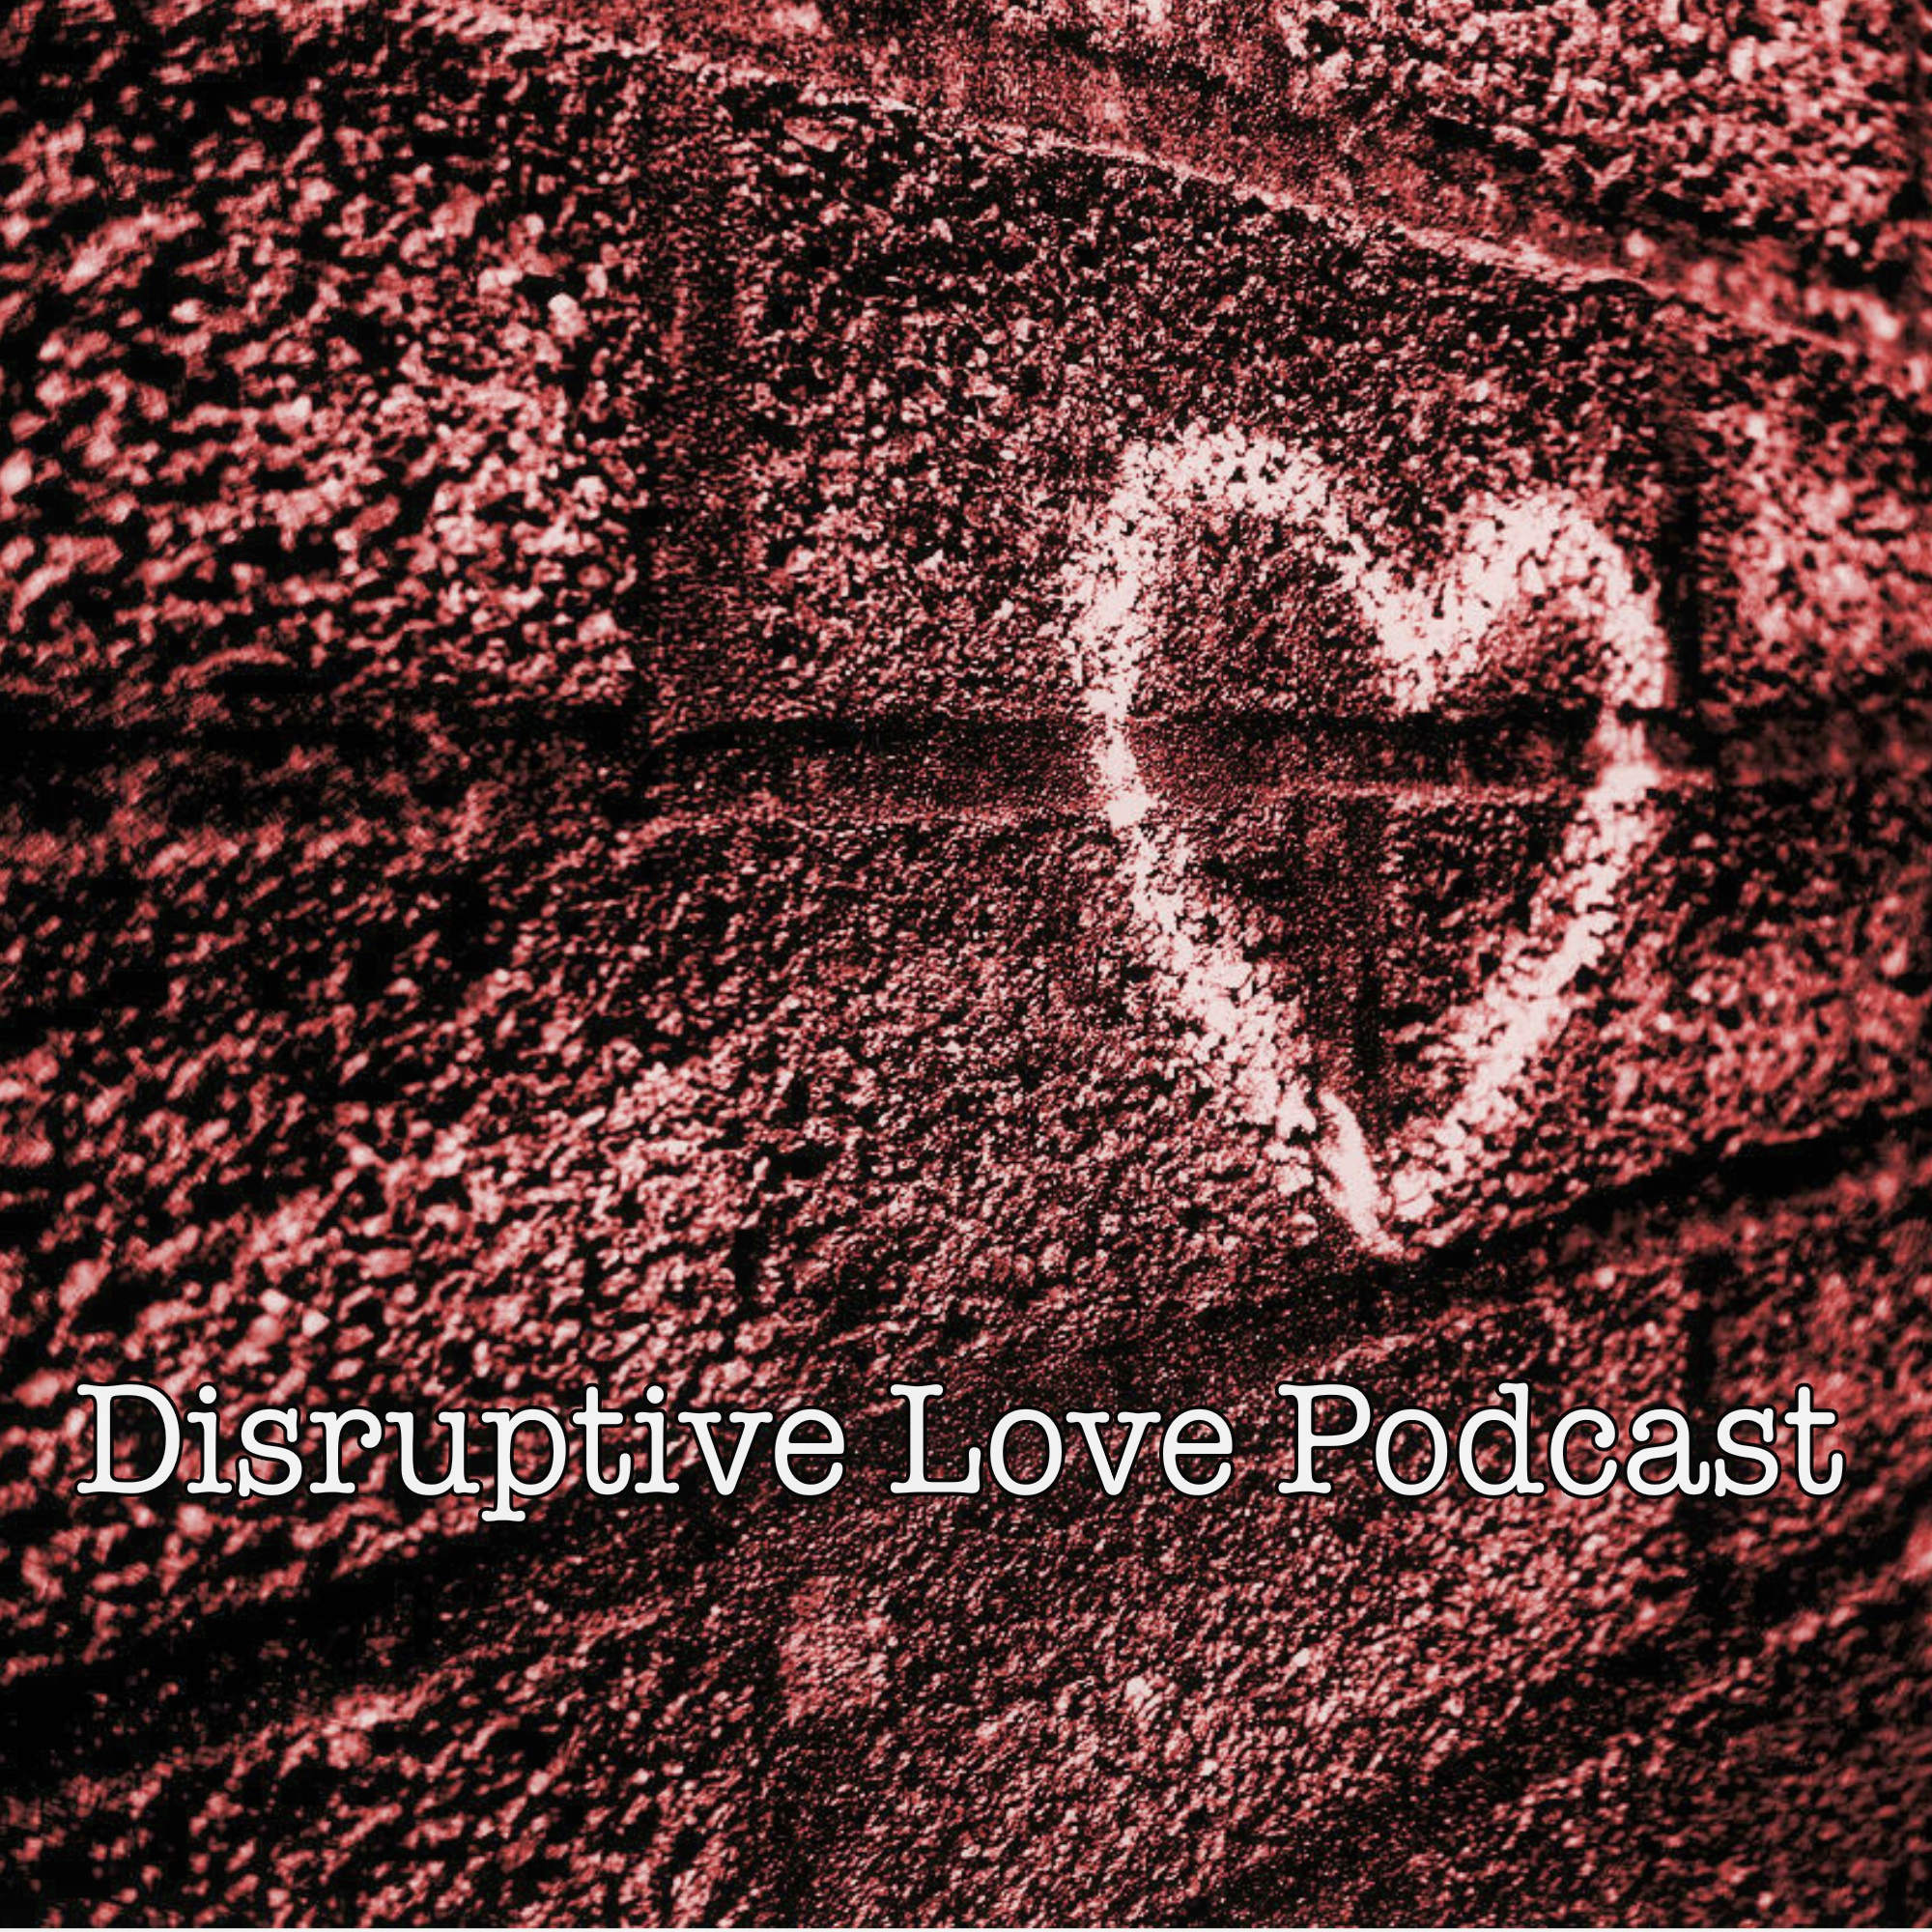 Disruptive Love Podcast - Relationships, Dating, and More